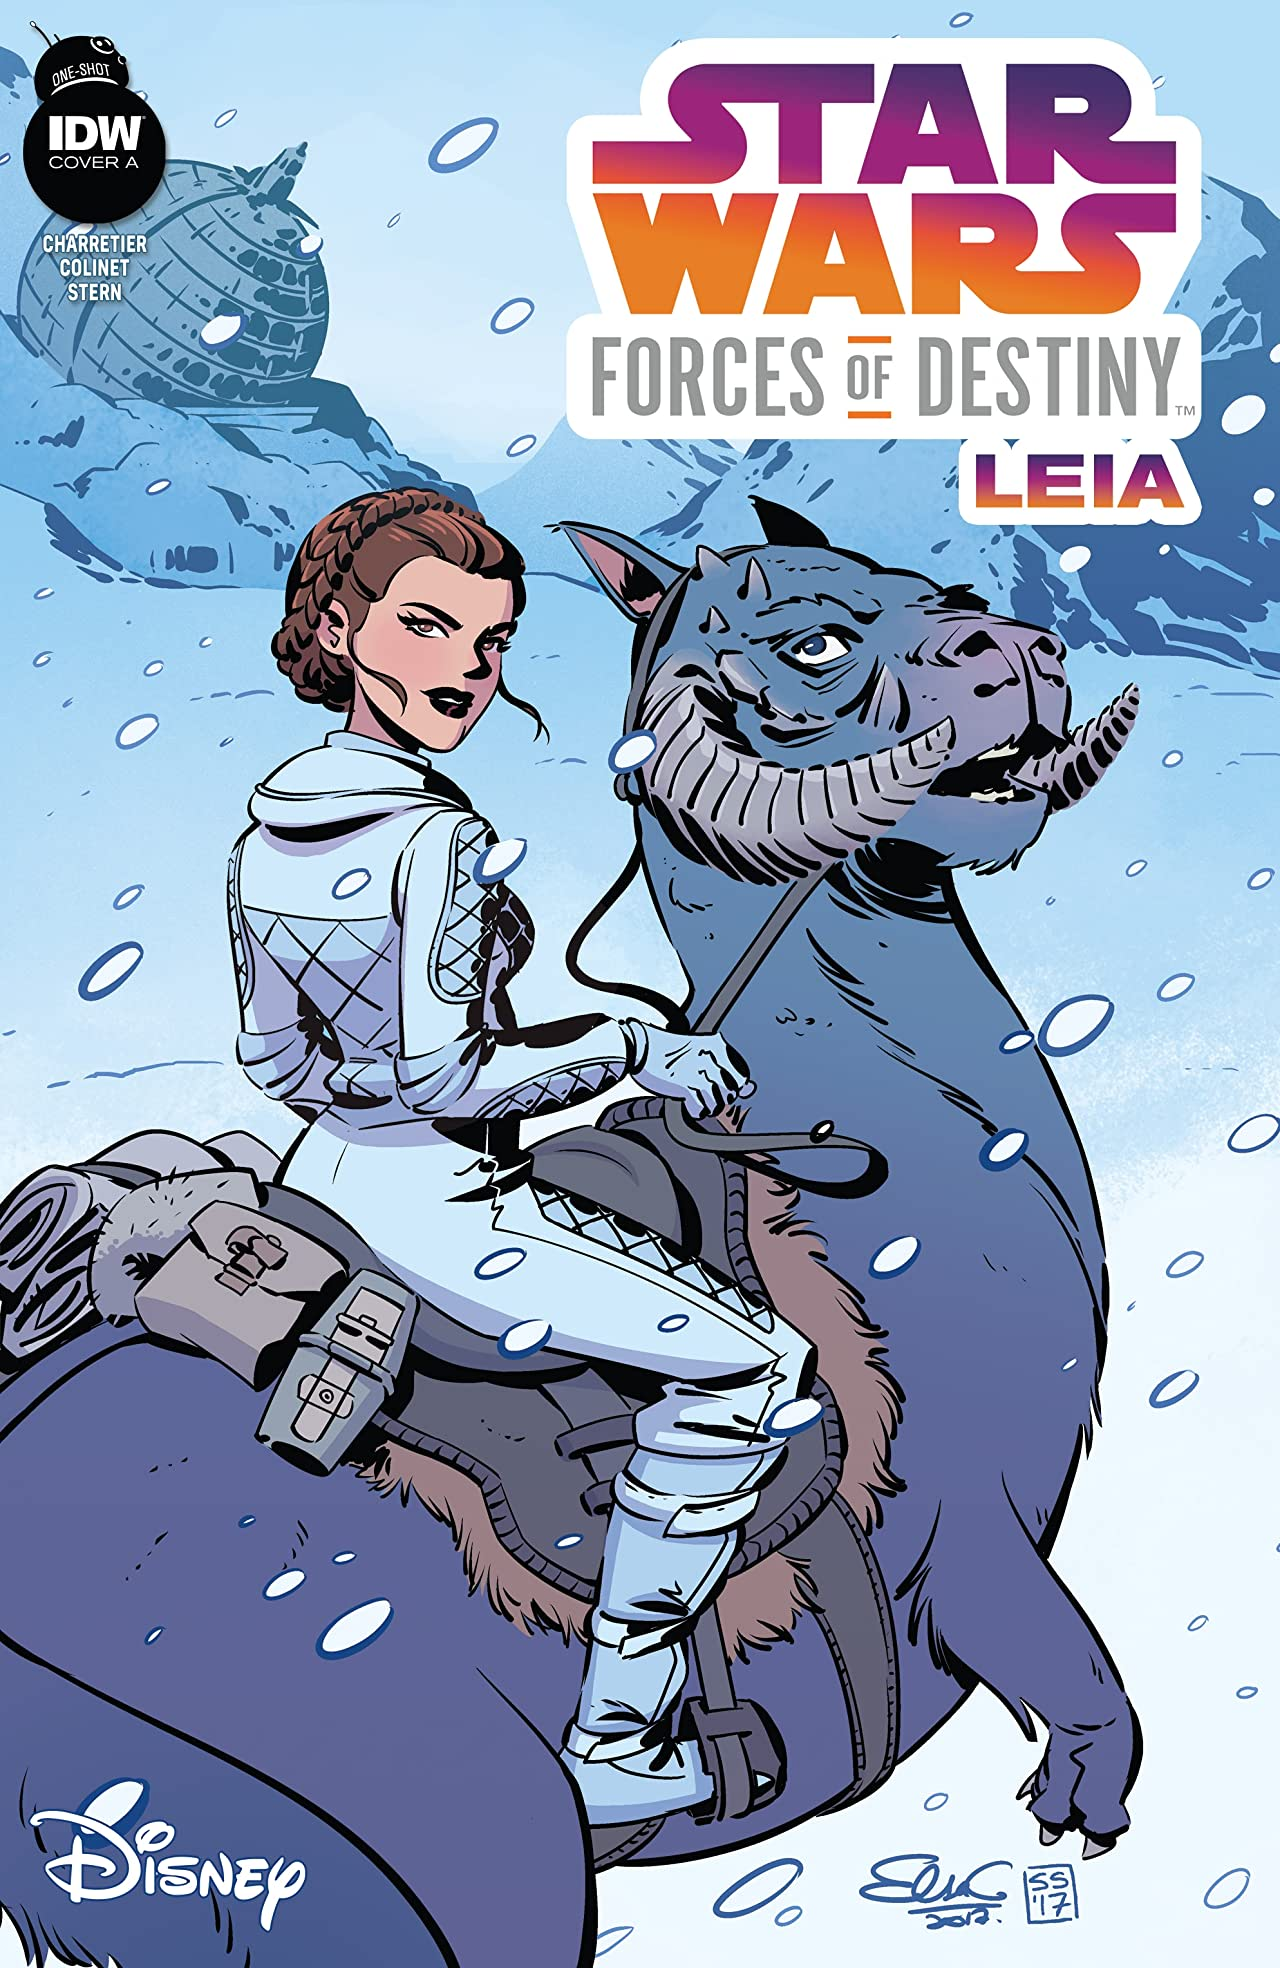 Star Wars Adventures: Forces of Destiny—Princess Leia